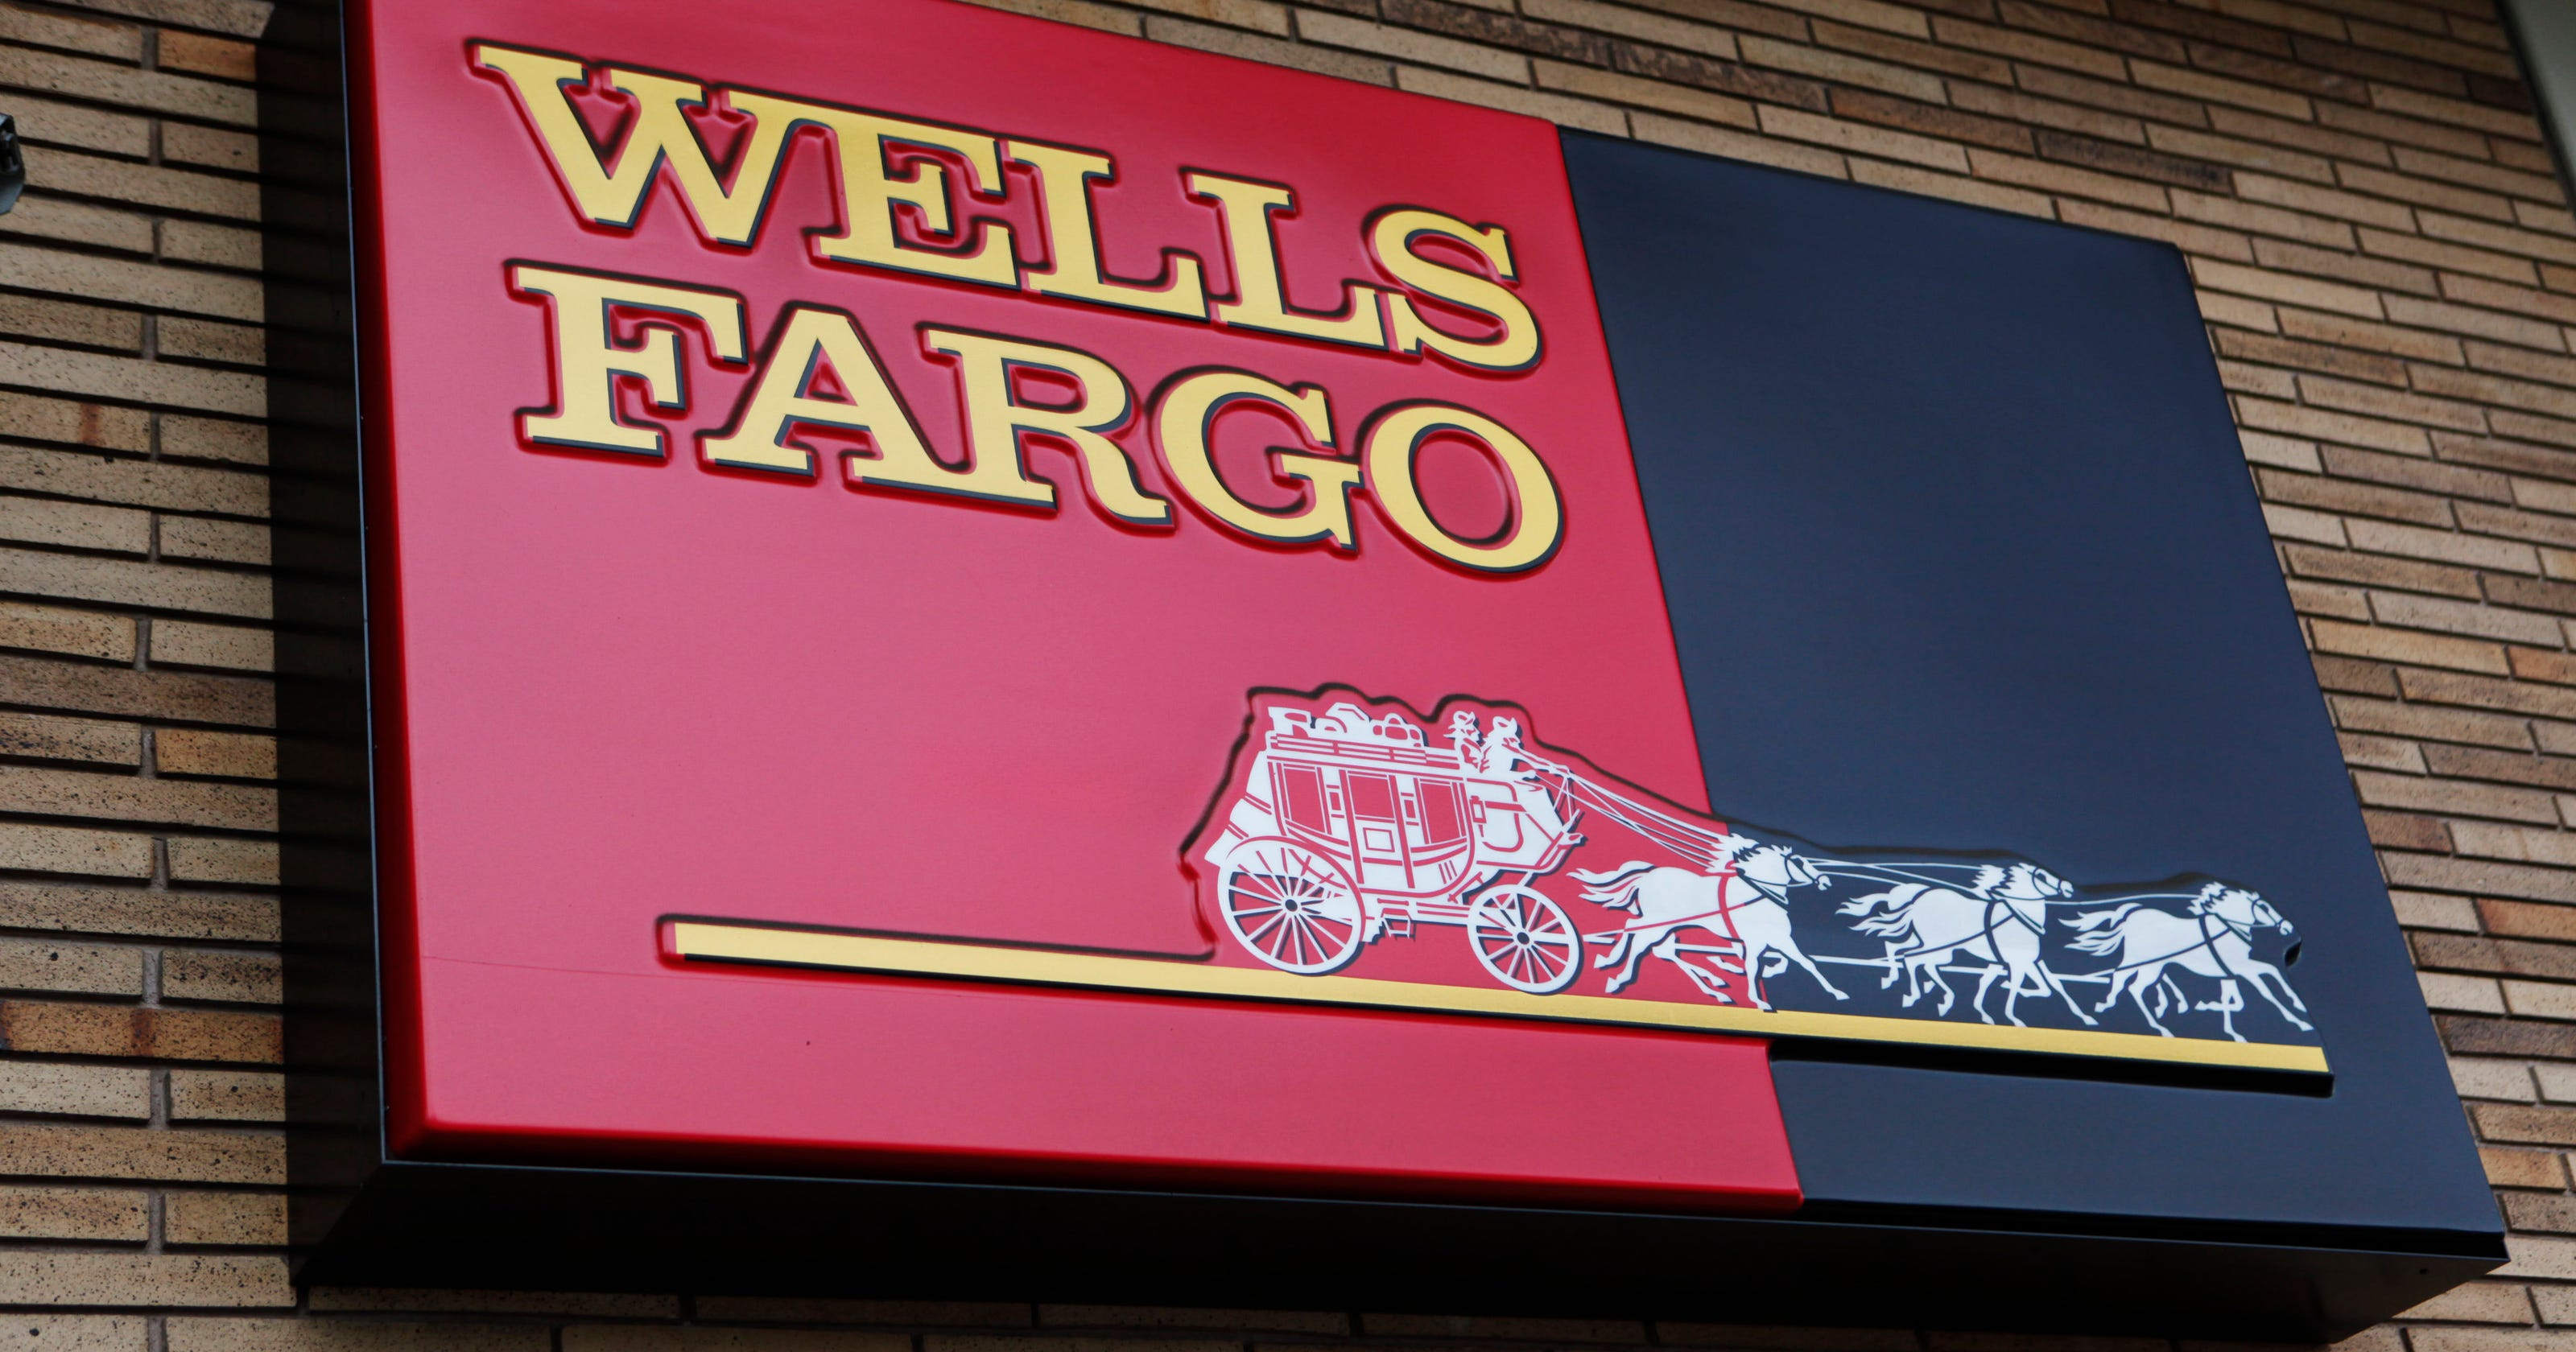 Feds found sales issues at Wells Fargo as early as 2010, six